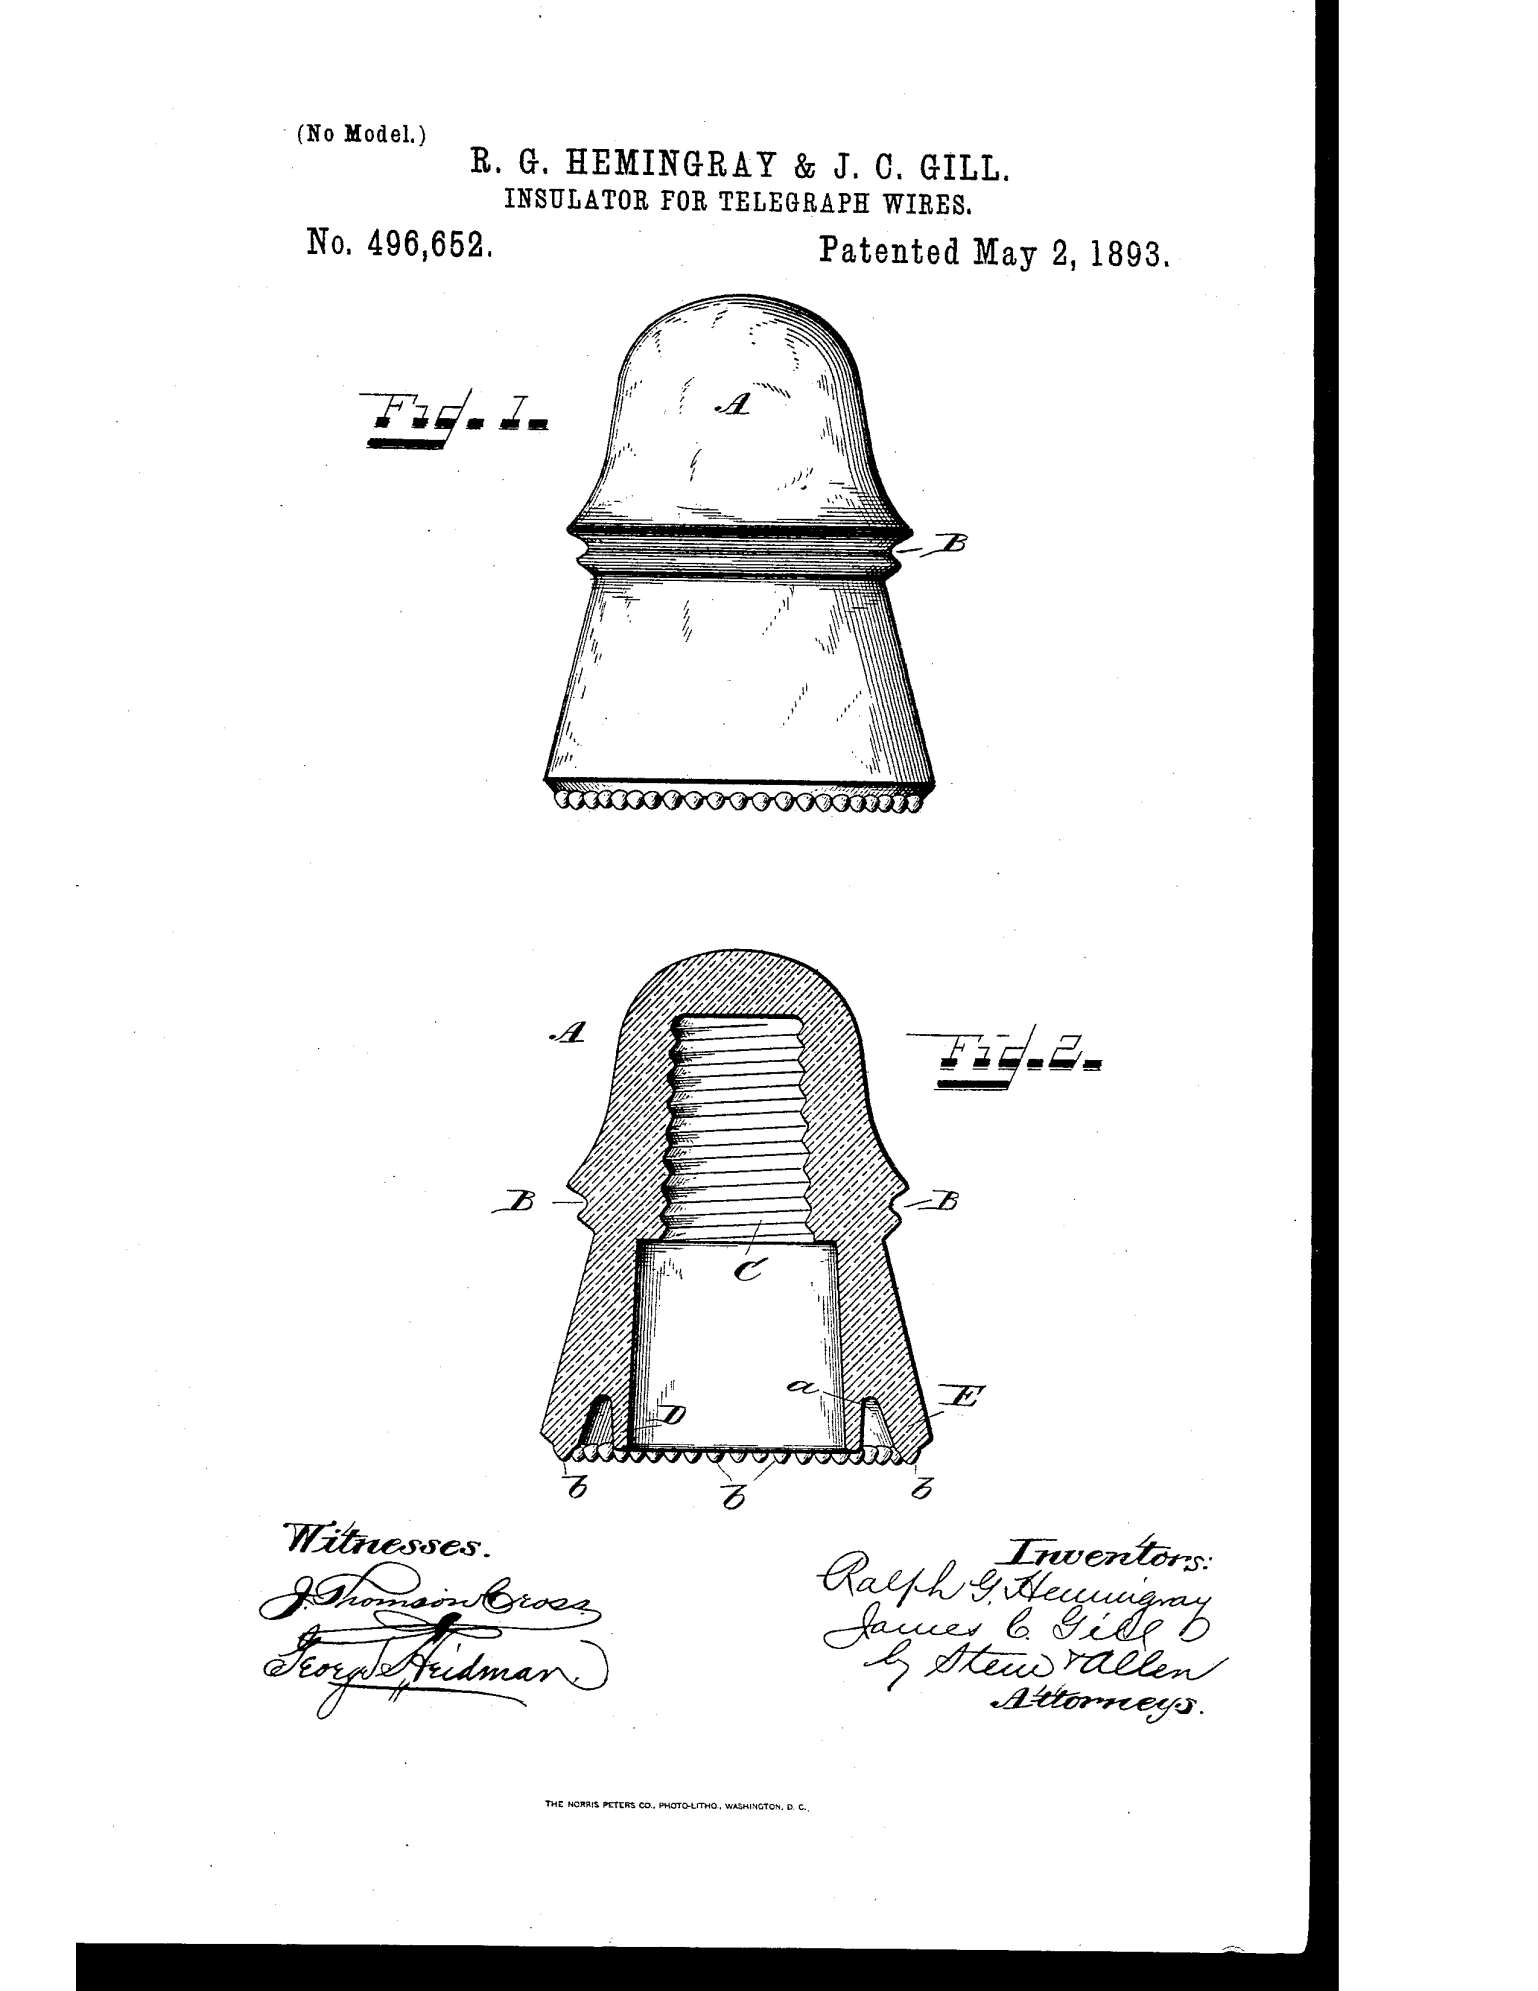 Hemingray Drip Points Patent